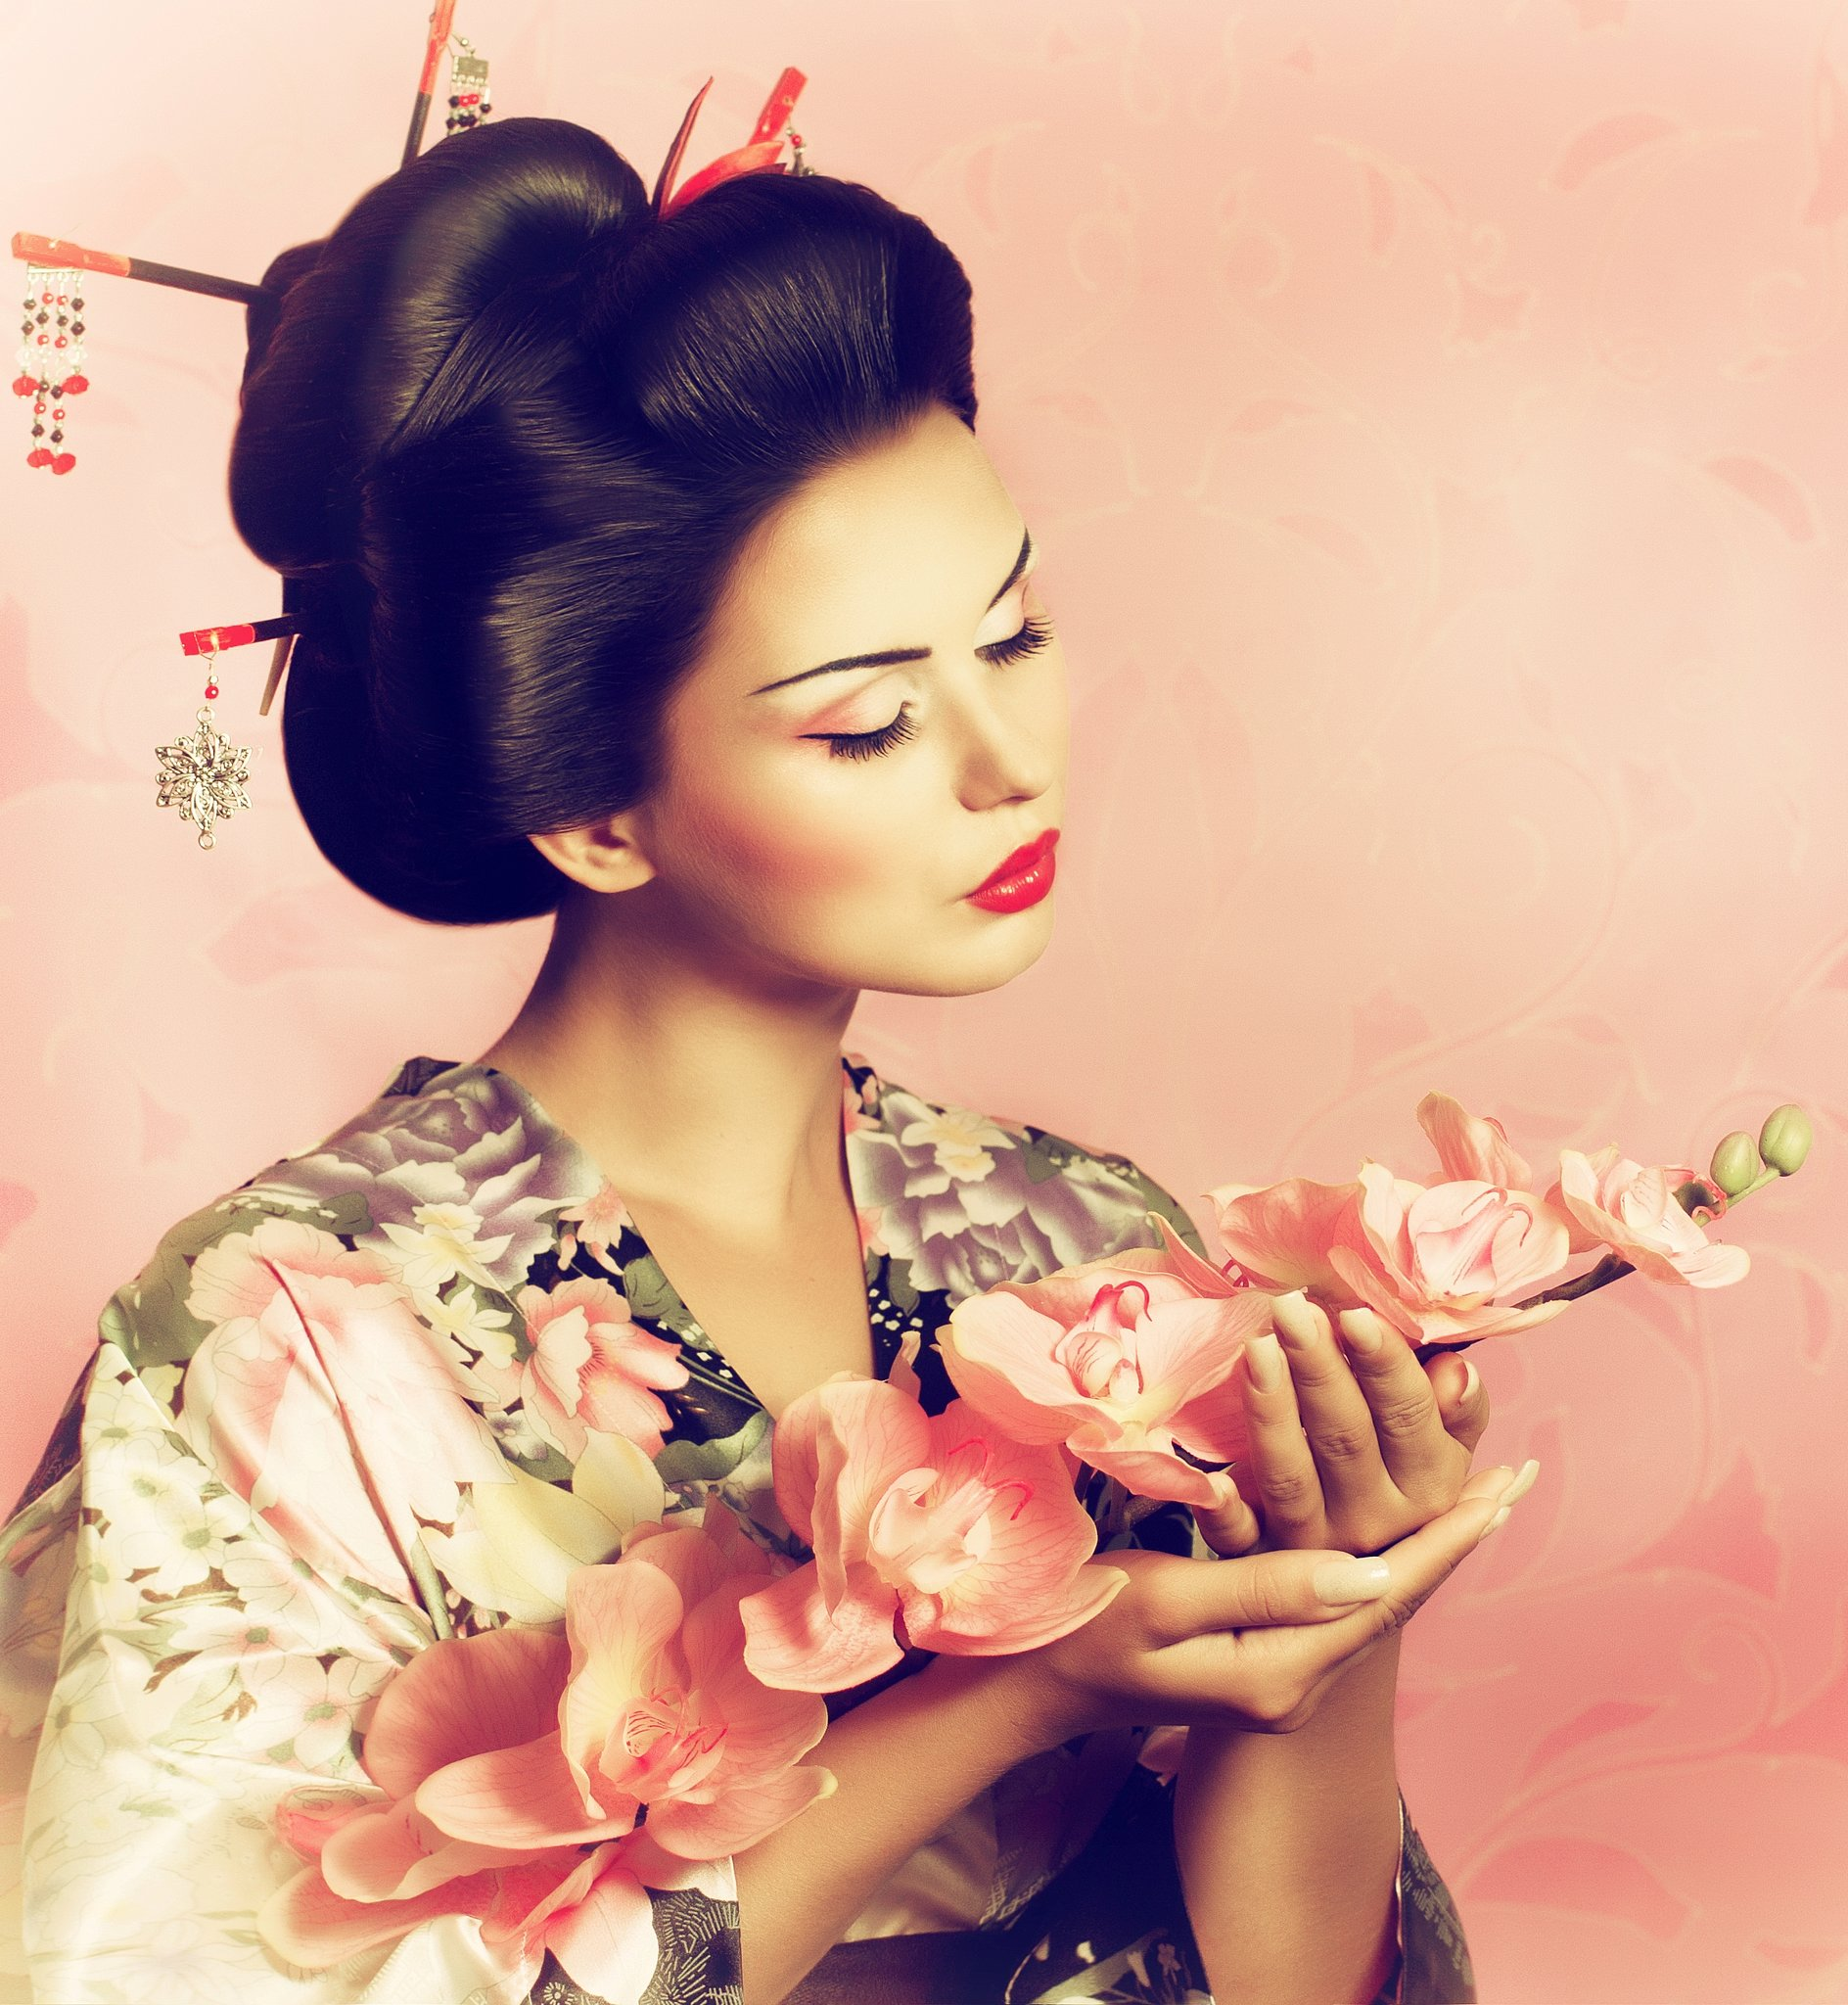 Beautiful Geisha Image 707.25 Kb